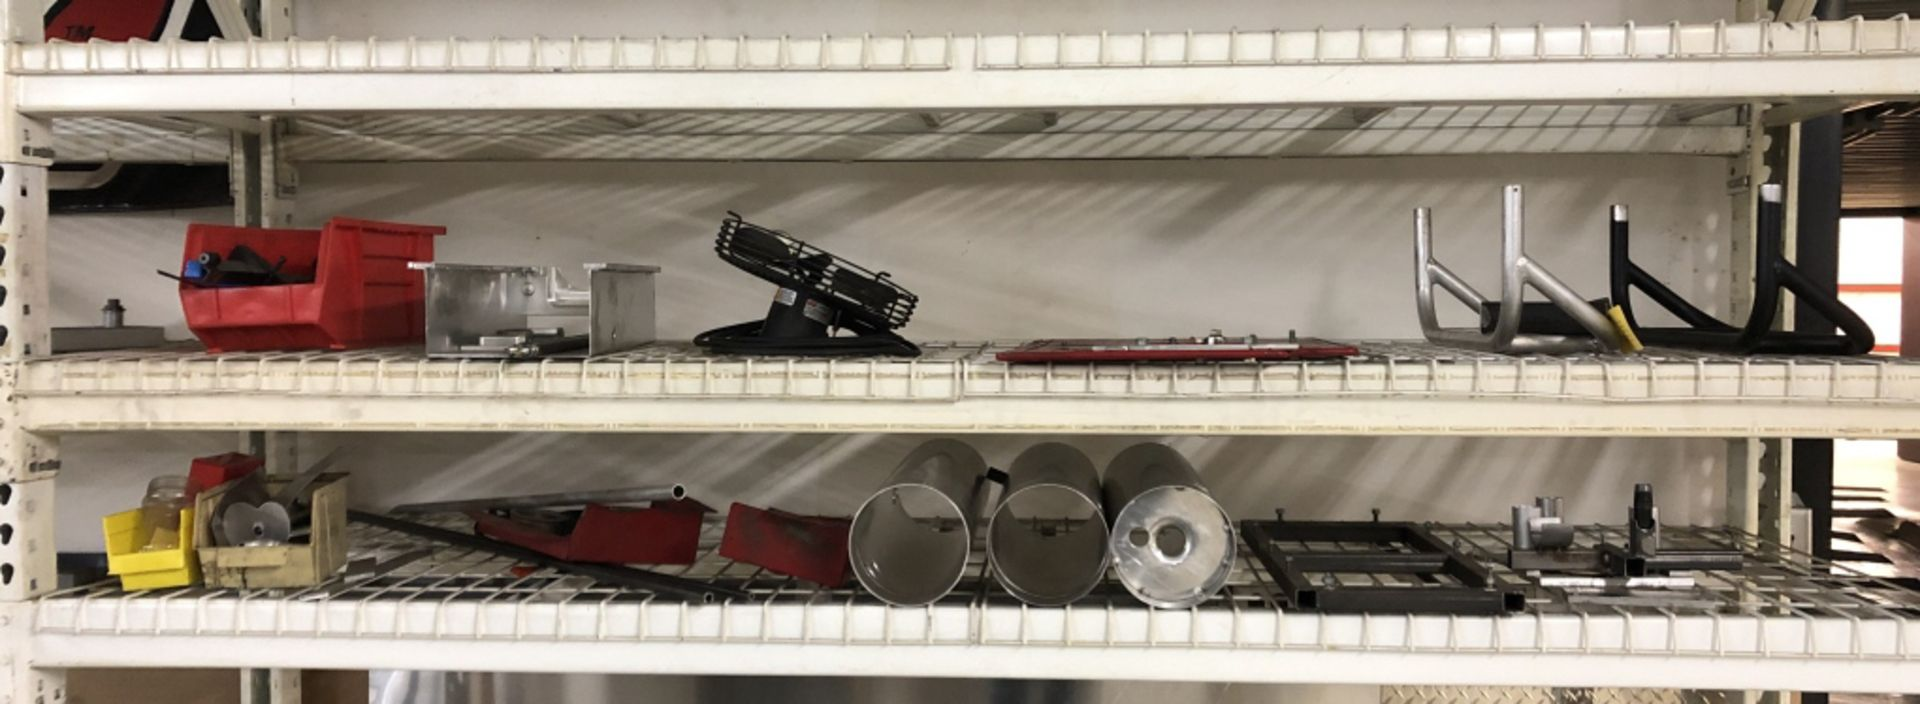 Lot 1004 - Shelf of Jigs for Engine Manufacturing and misc.